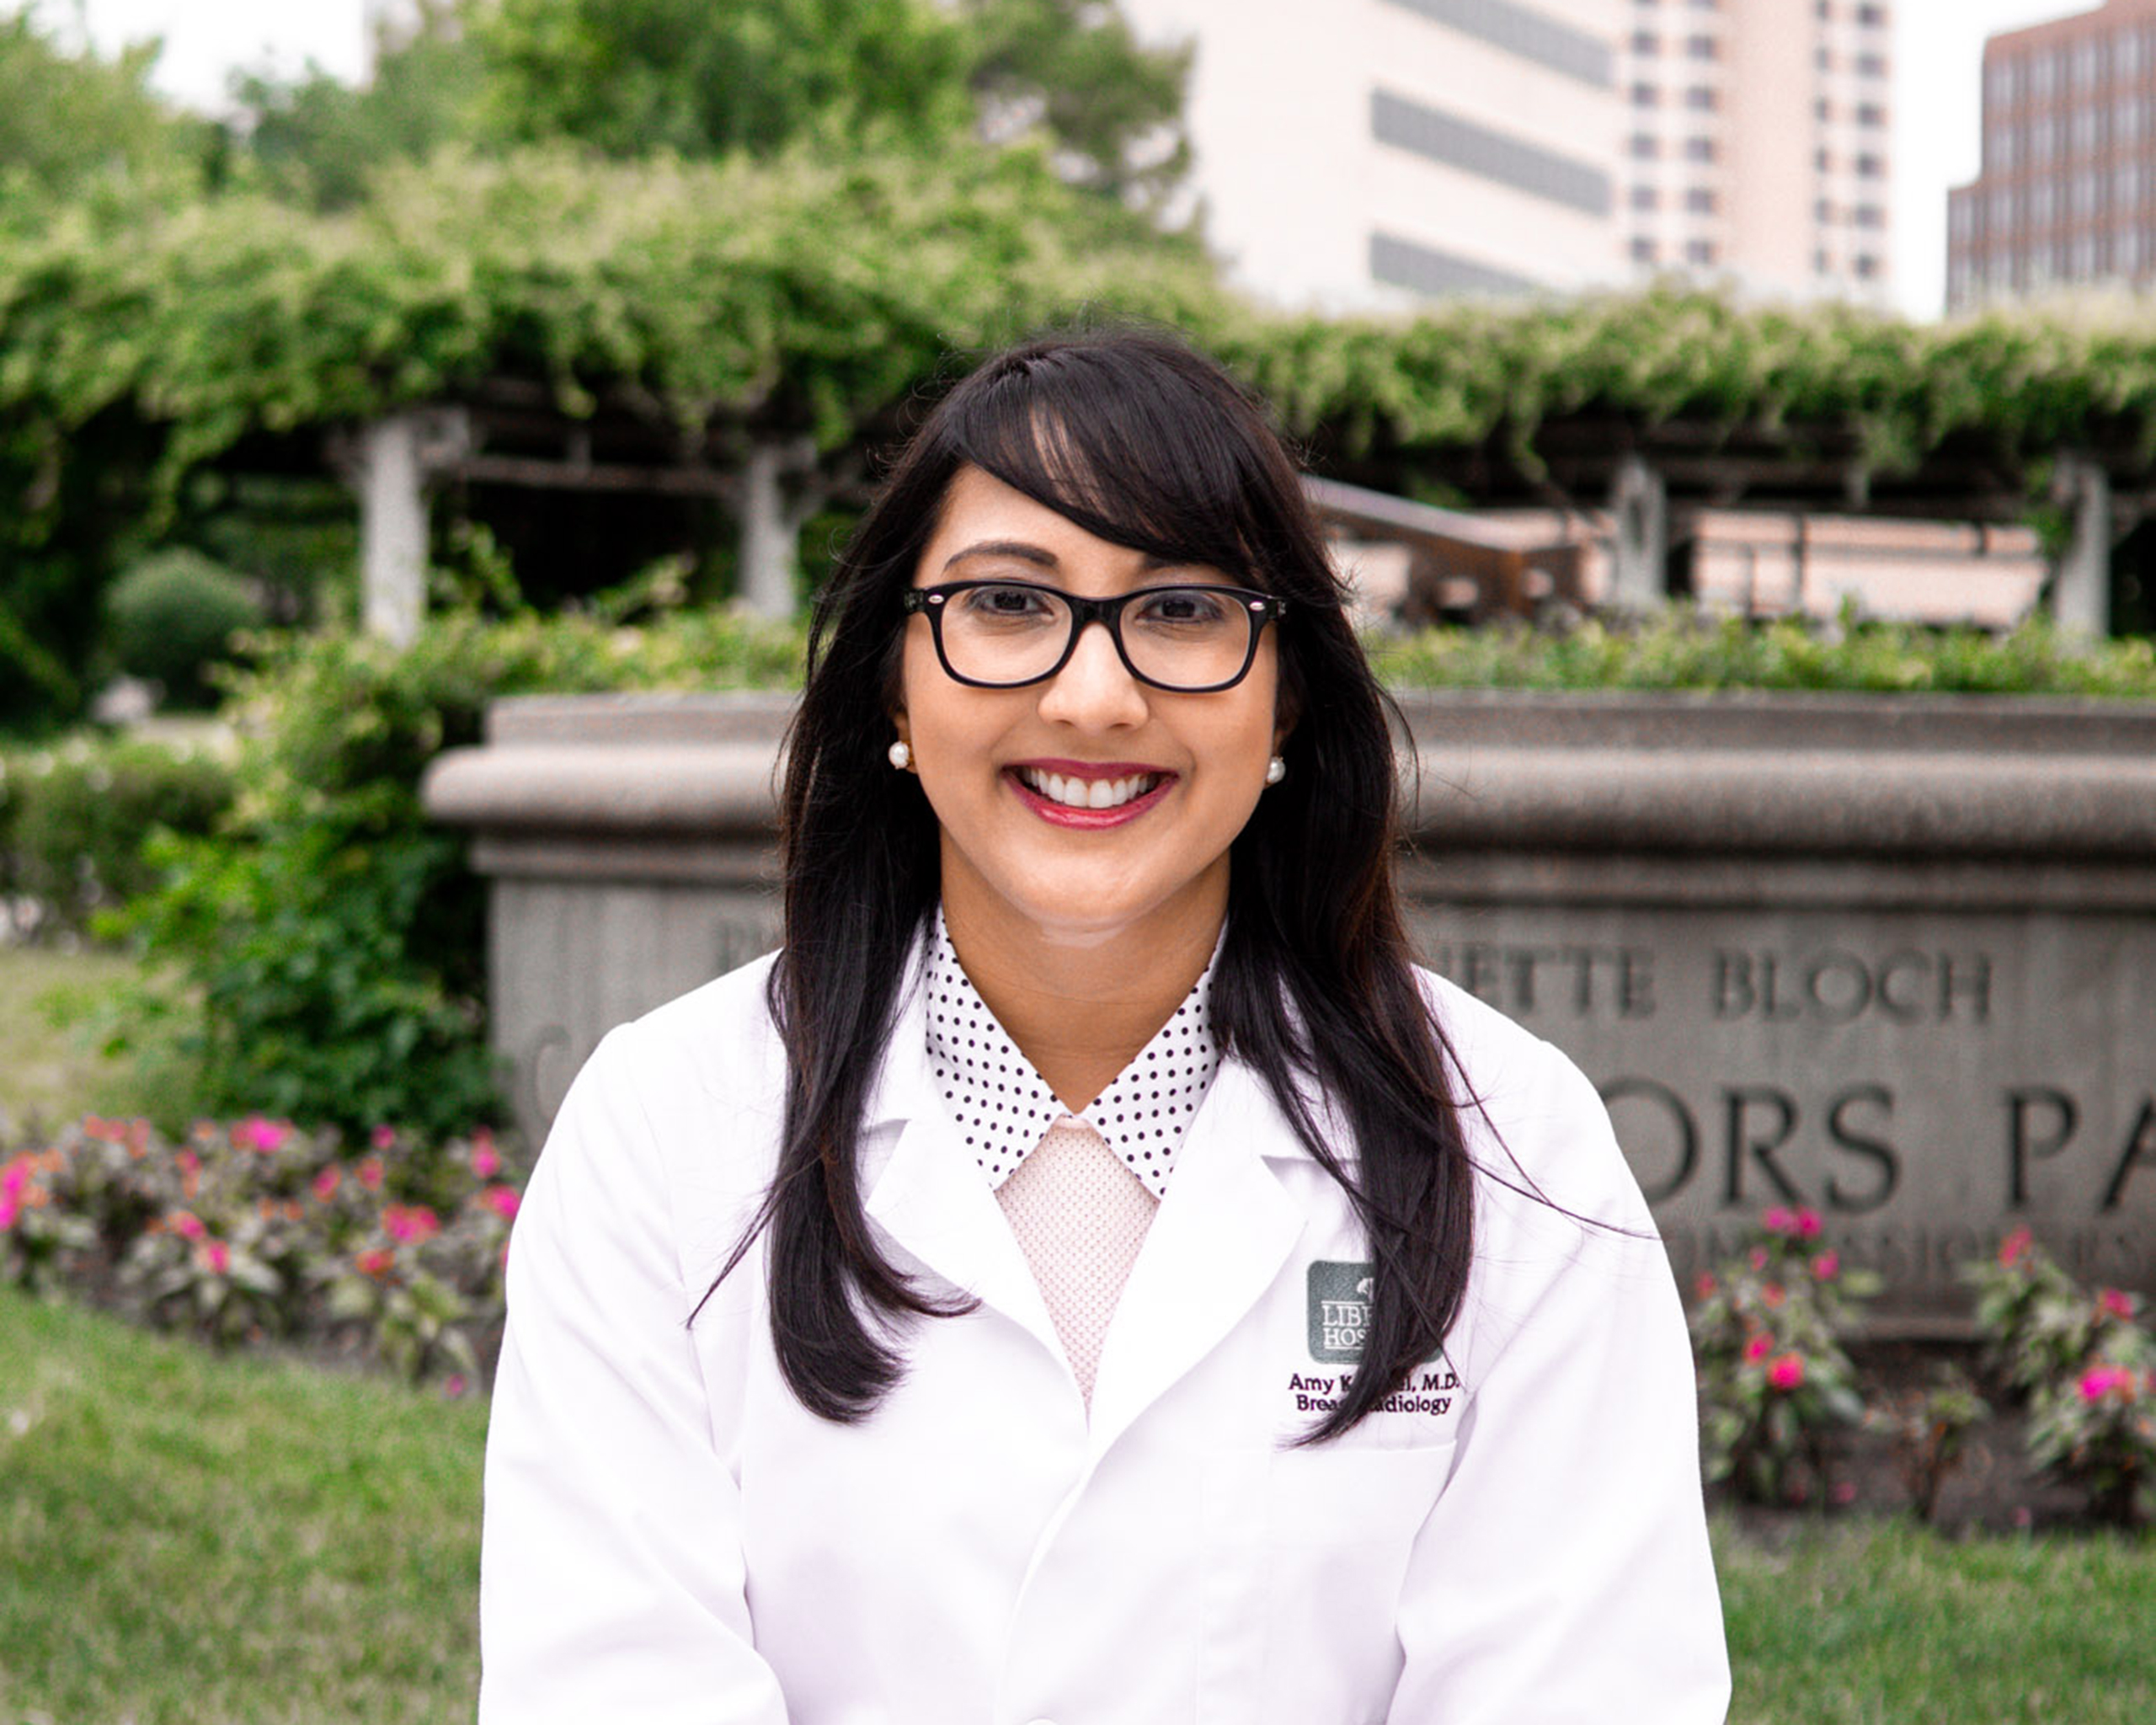 We've teamed up with Leading Breast Imaging Professional, Dr. Amy K. Patel